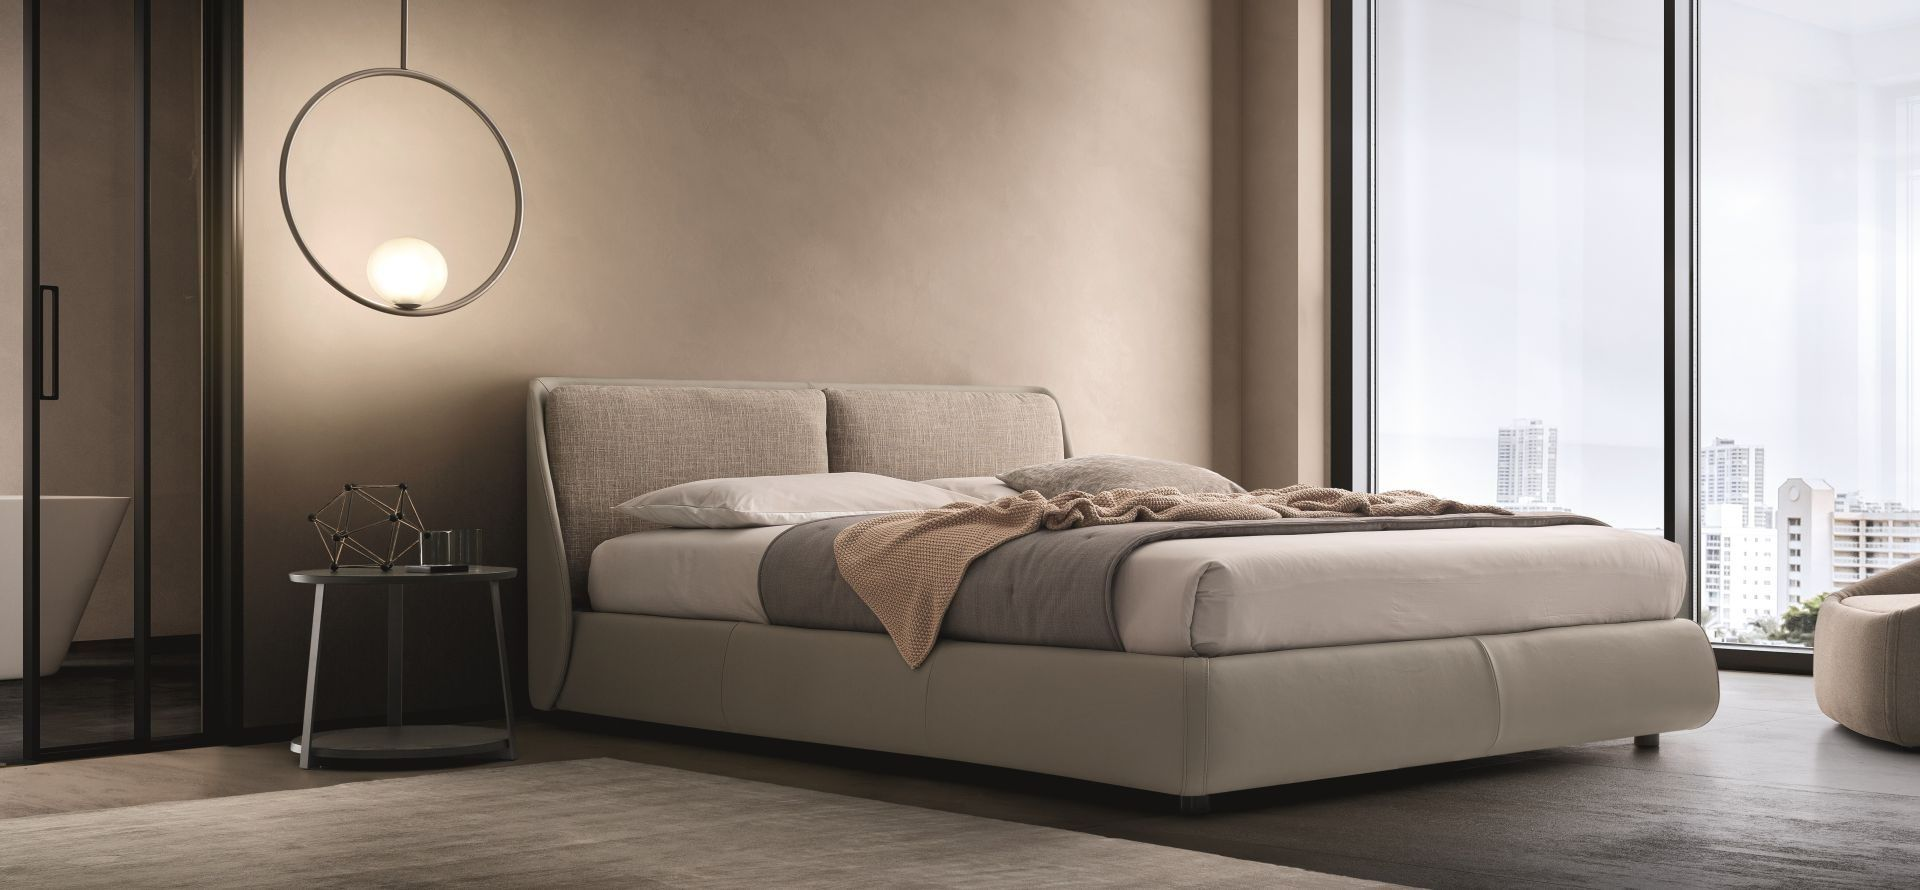 BEND Ditre Italia in 2020 Leather bed, Italian leather